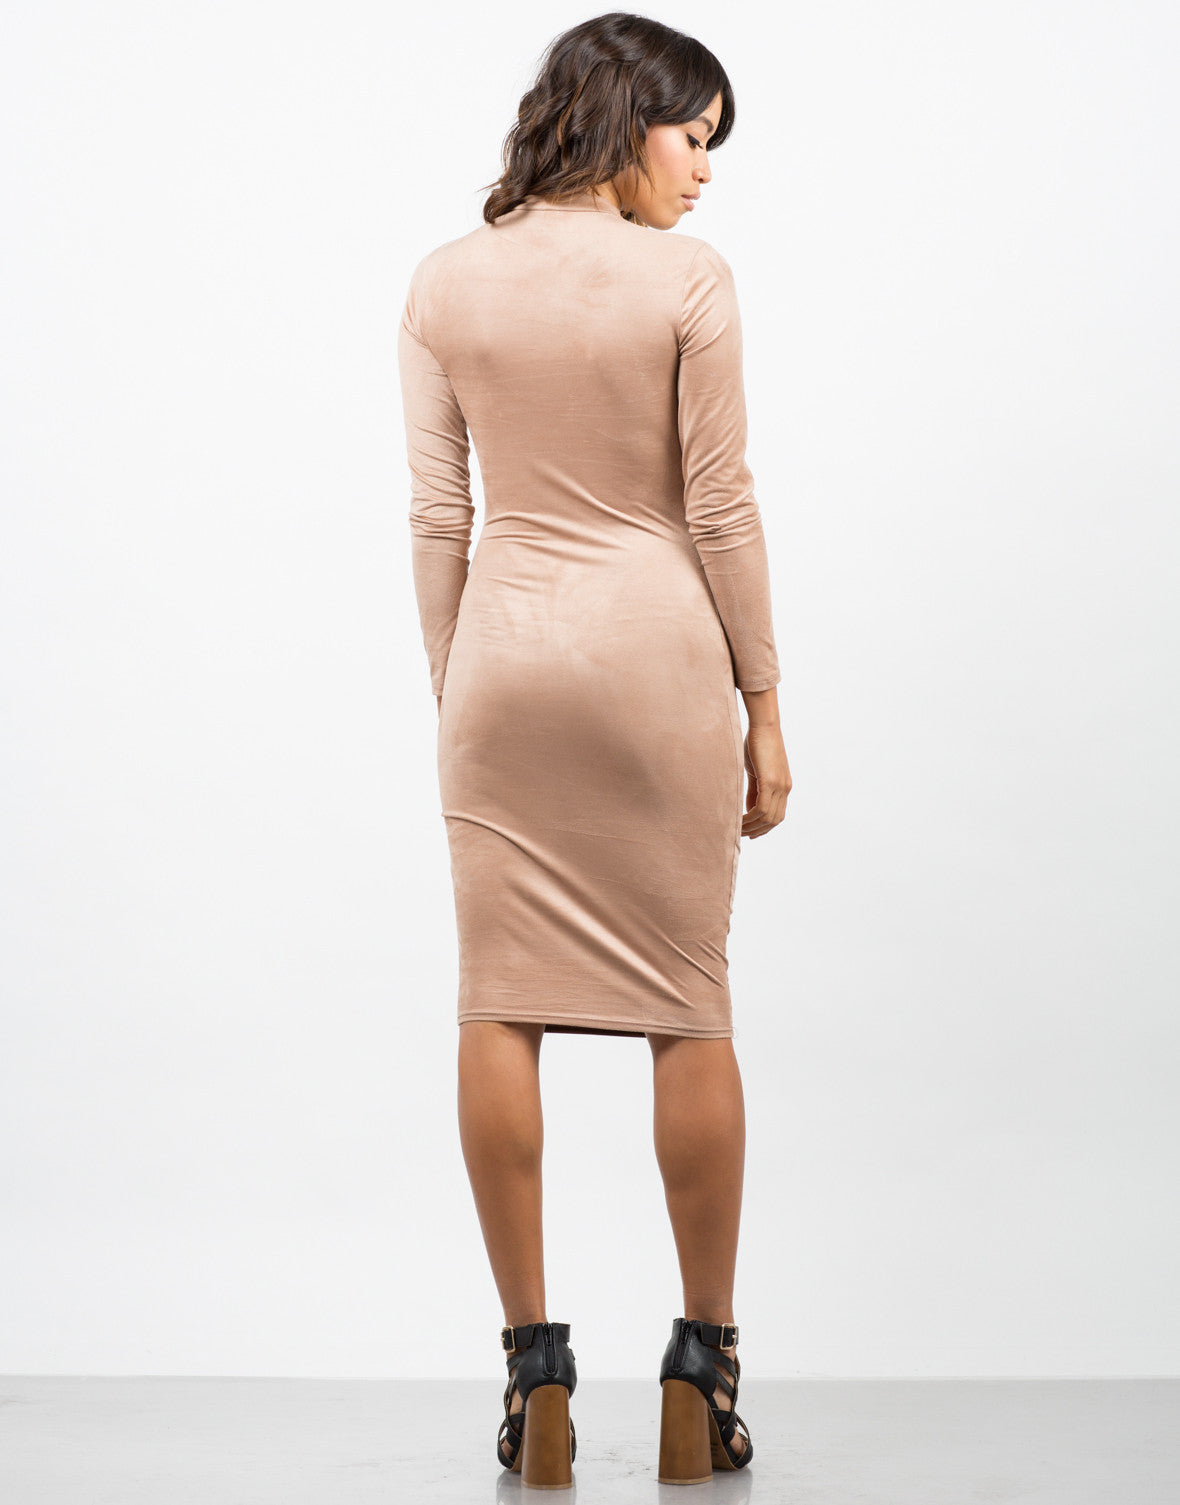 Back View of Suede Bodycon Dress